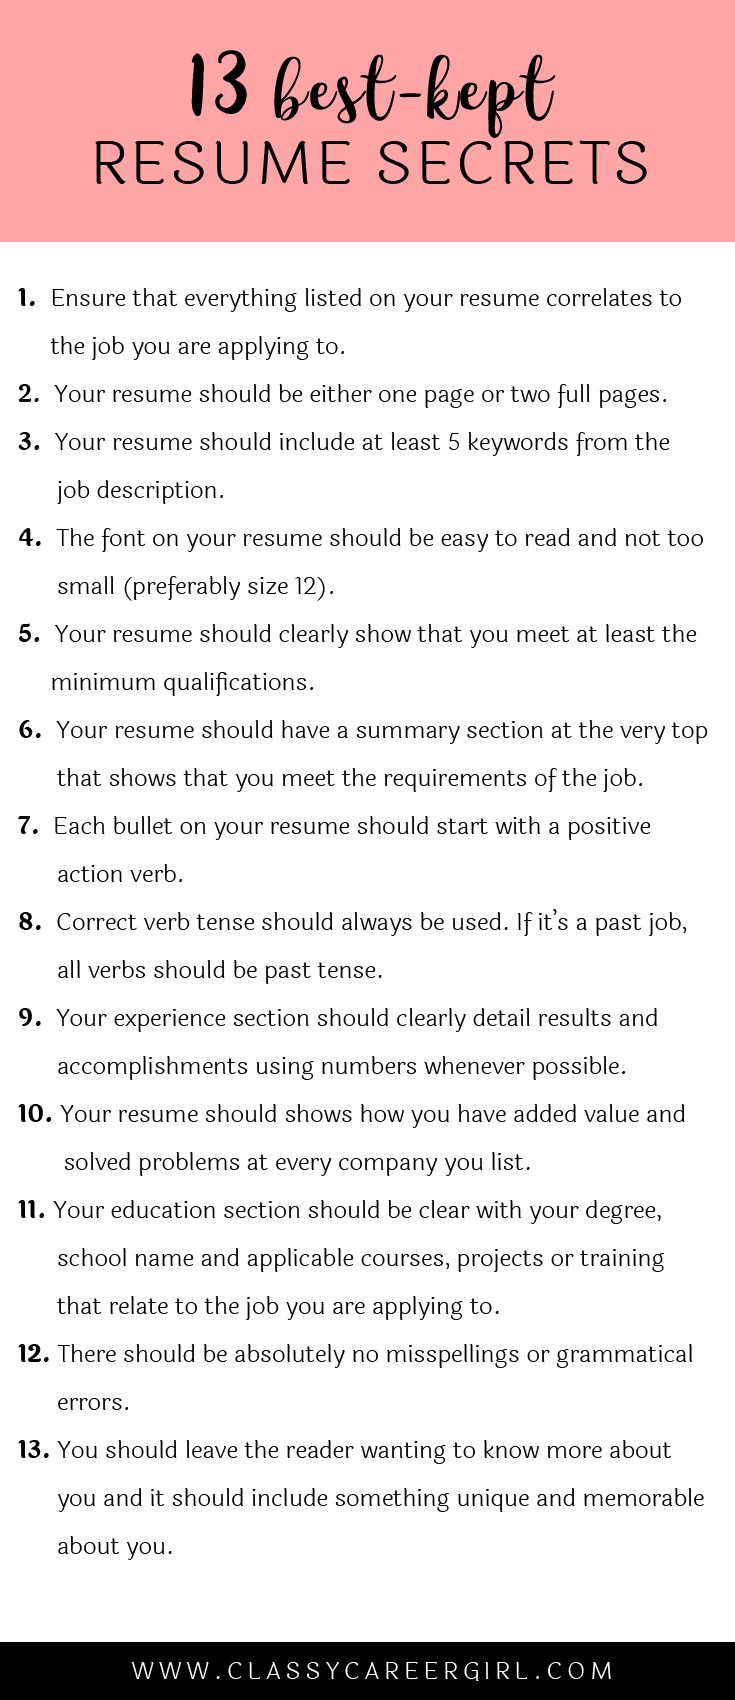 Opposenewapstandardsus  Ravishing  Ideas About Resume On Pinterest  Cv Format Resume Cv And  With Great Some Hiring Managers Will Toss Your Resume Out If You Dont Know These  With Delectable Strong Adjectives For Resume Also Data Modeler Resume In Addition Dental Resume Examples And Example Of Bad Resume As Well As Resume Summary Vs Objective Additionally College Job Resume From Pinterestcom With Opposenewapstandardsus  Great  Ideas About Resume On Pinterest  Cv Format Resume Cv And  With Delectable Some Hiring Managers Will Toss Your Resume Out If You Dont Know These  And Ravishing Strong Adjectives For Resume Also Data Modeler Resume In Addition Dental Resume Examples From Pinterestcom